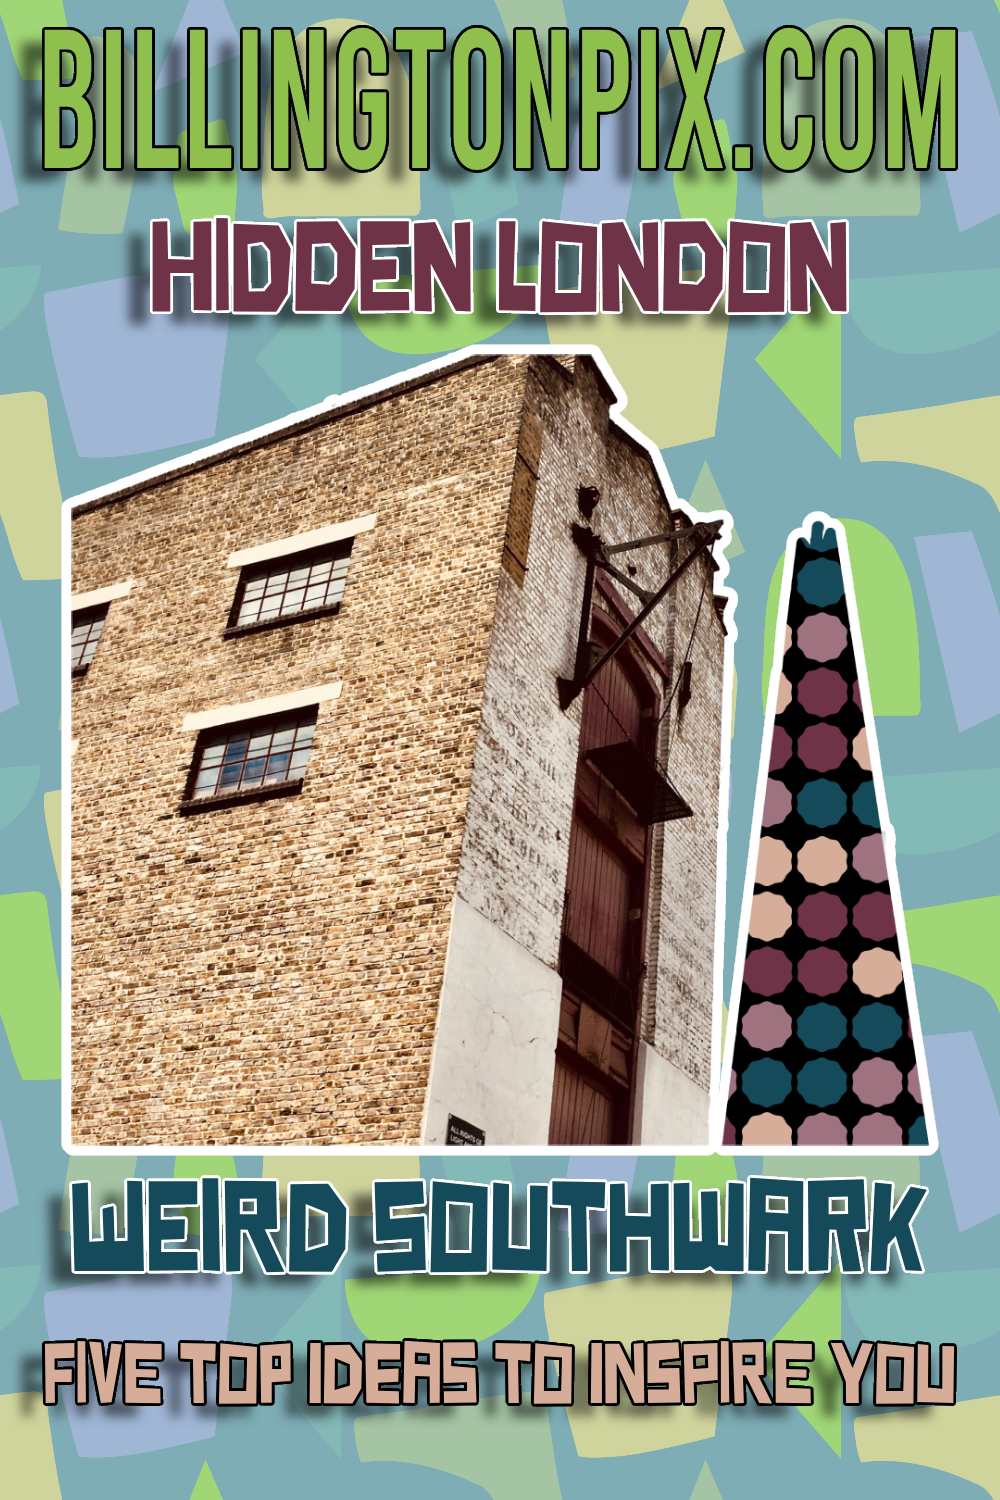 Five Weird and Educational Things to Do in Southwark